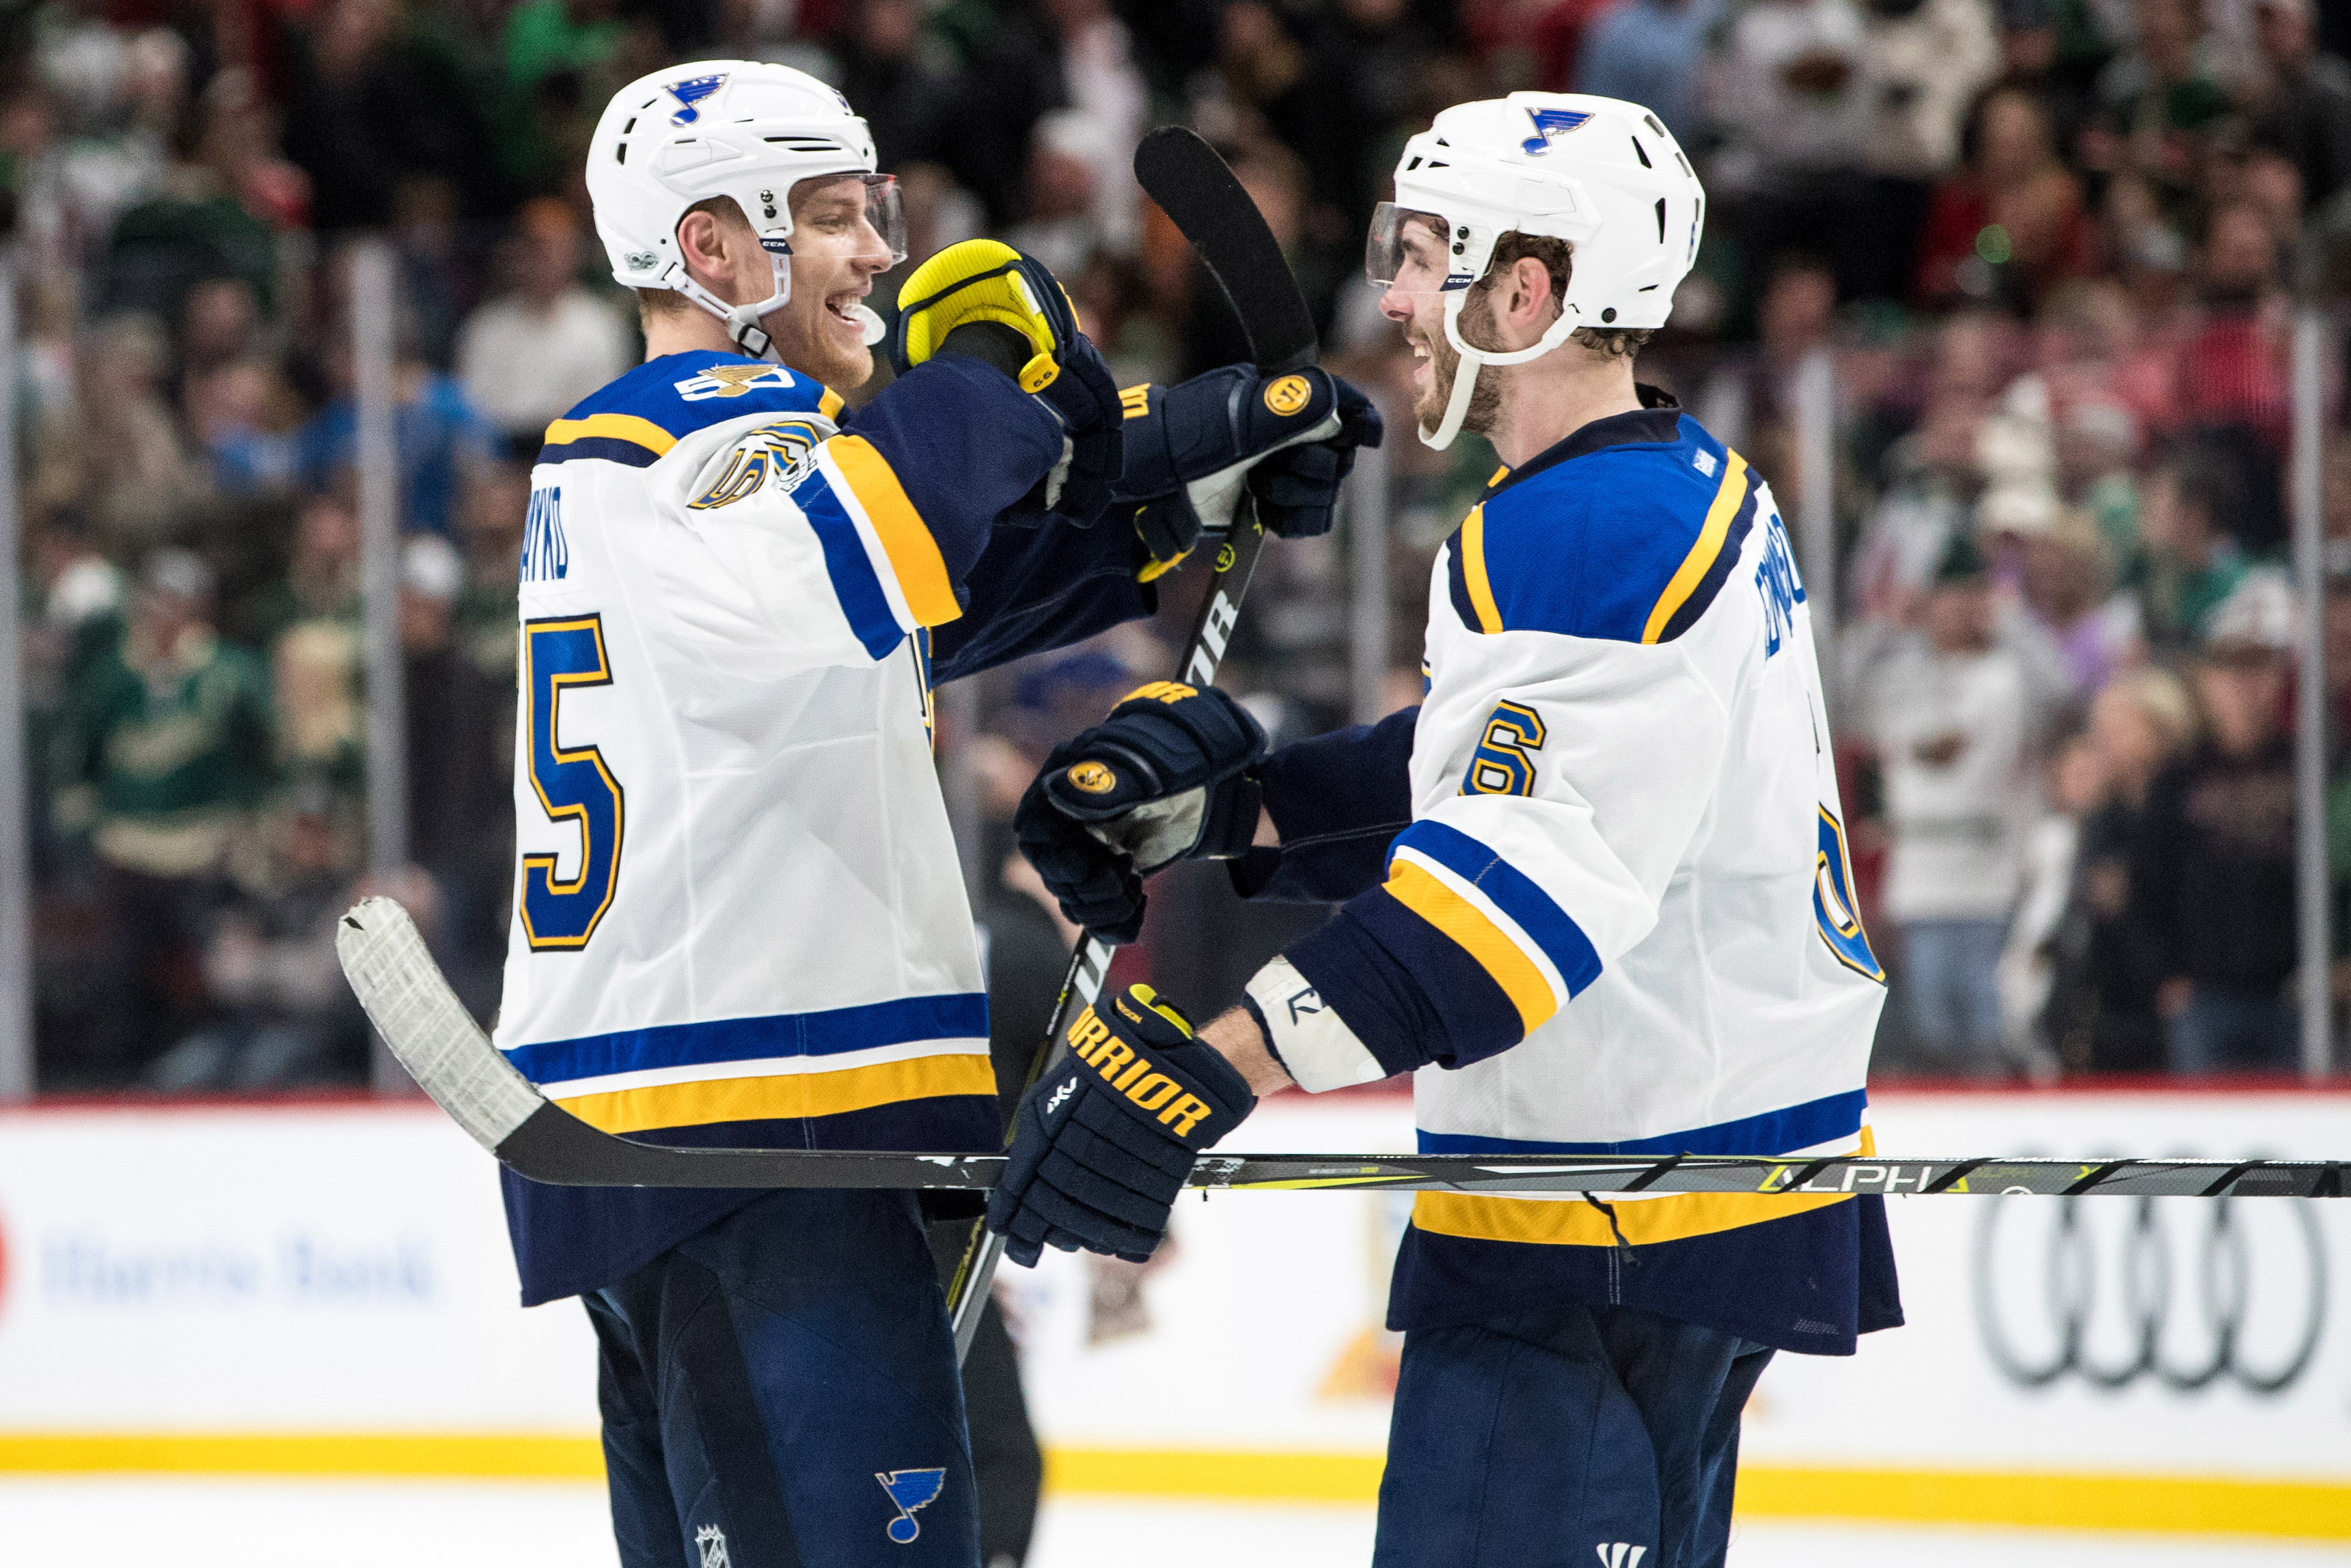 10009777-nhl-stanley-cup-playoffs-st.-louis-blues-at-minnesota-wild